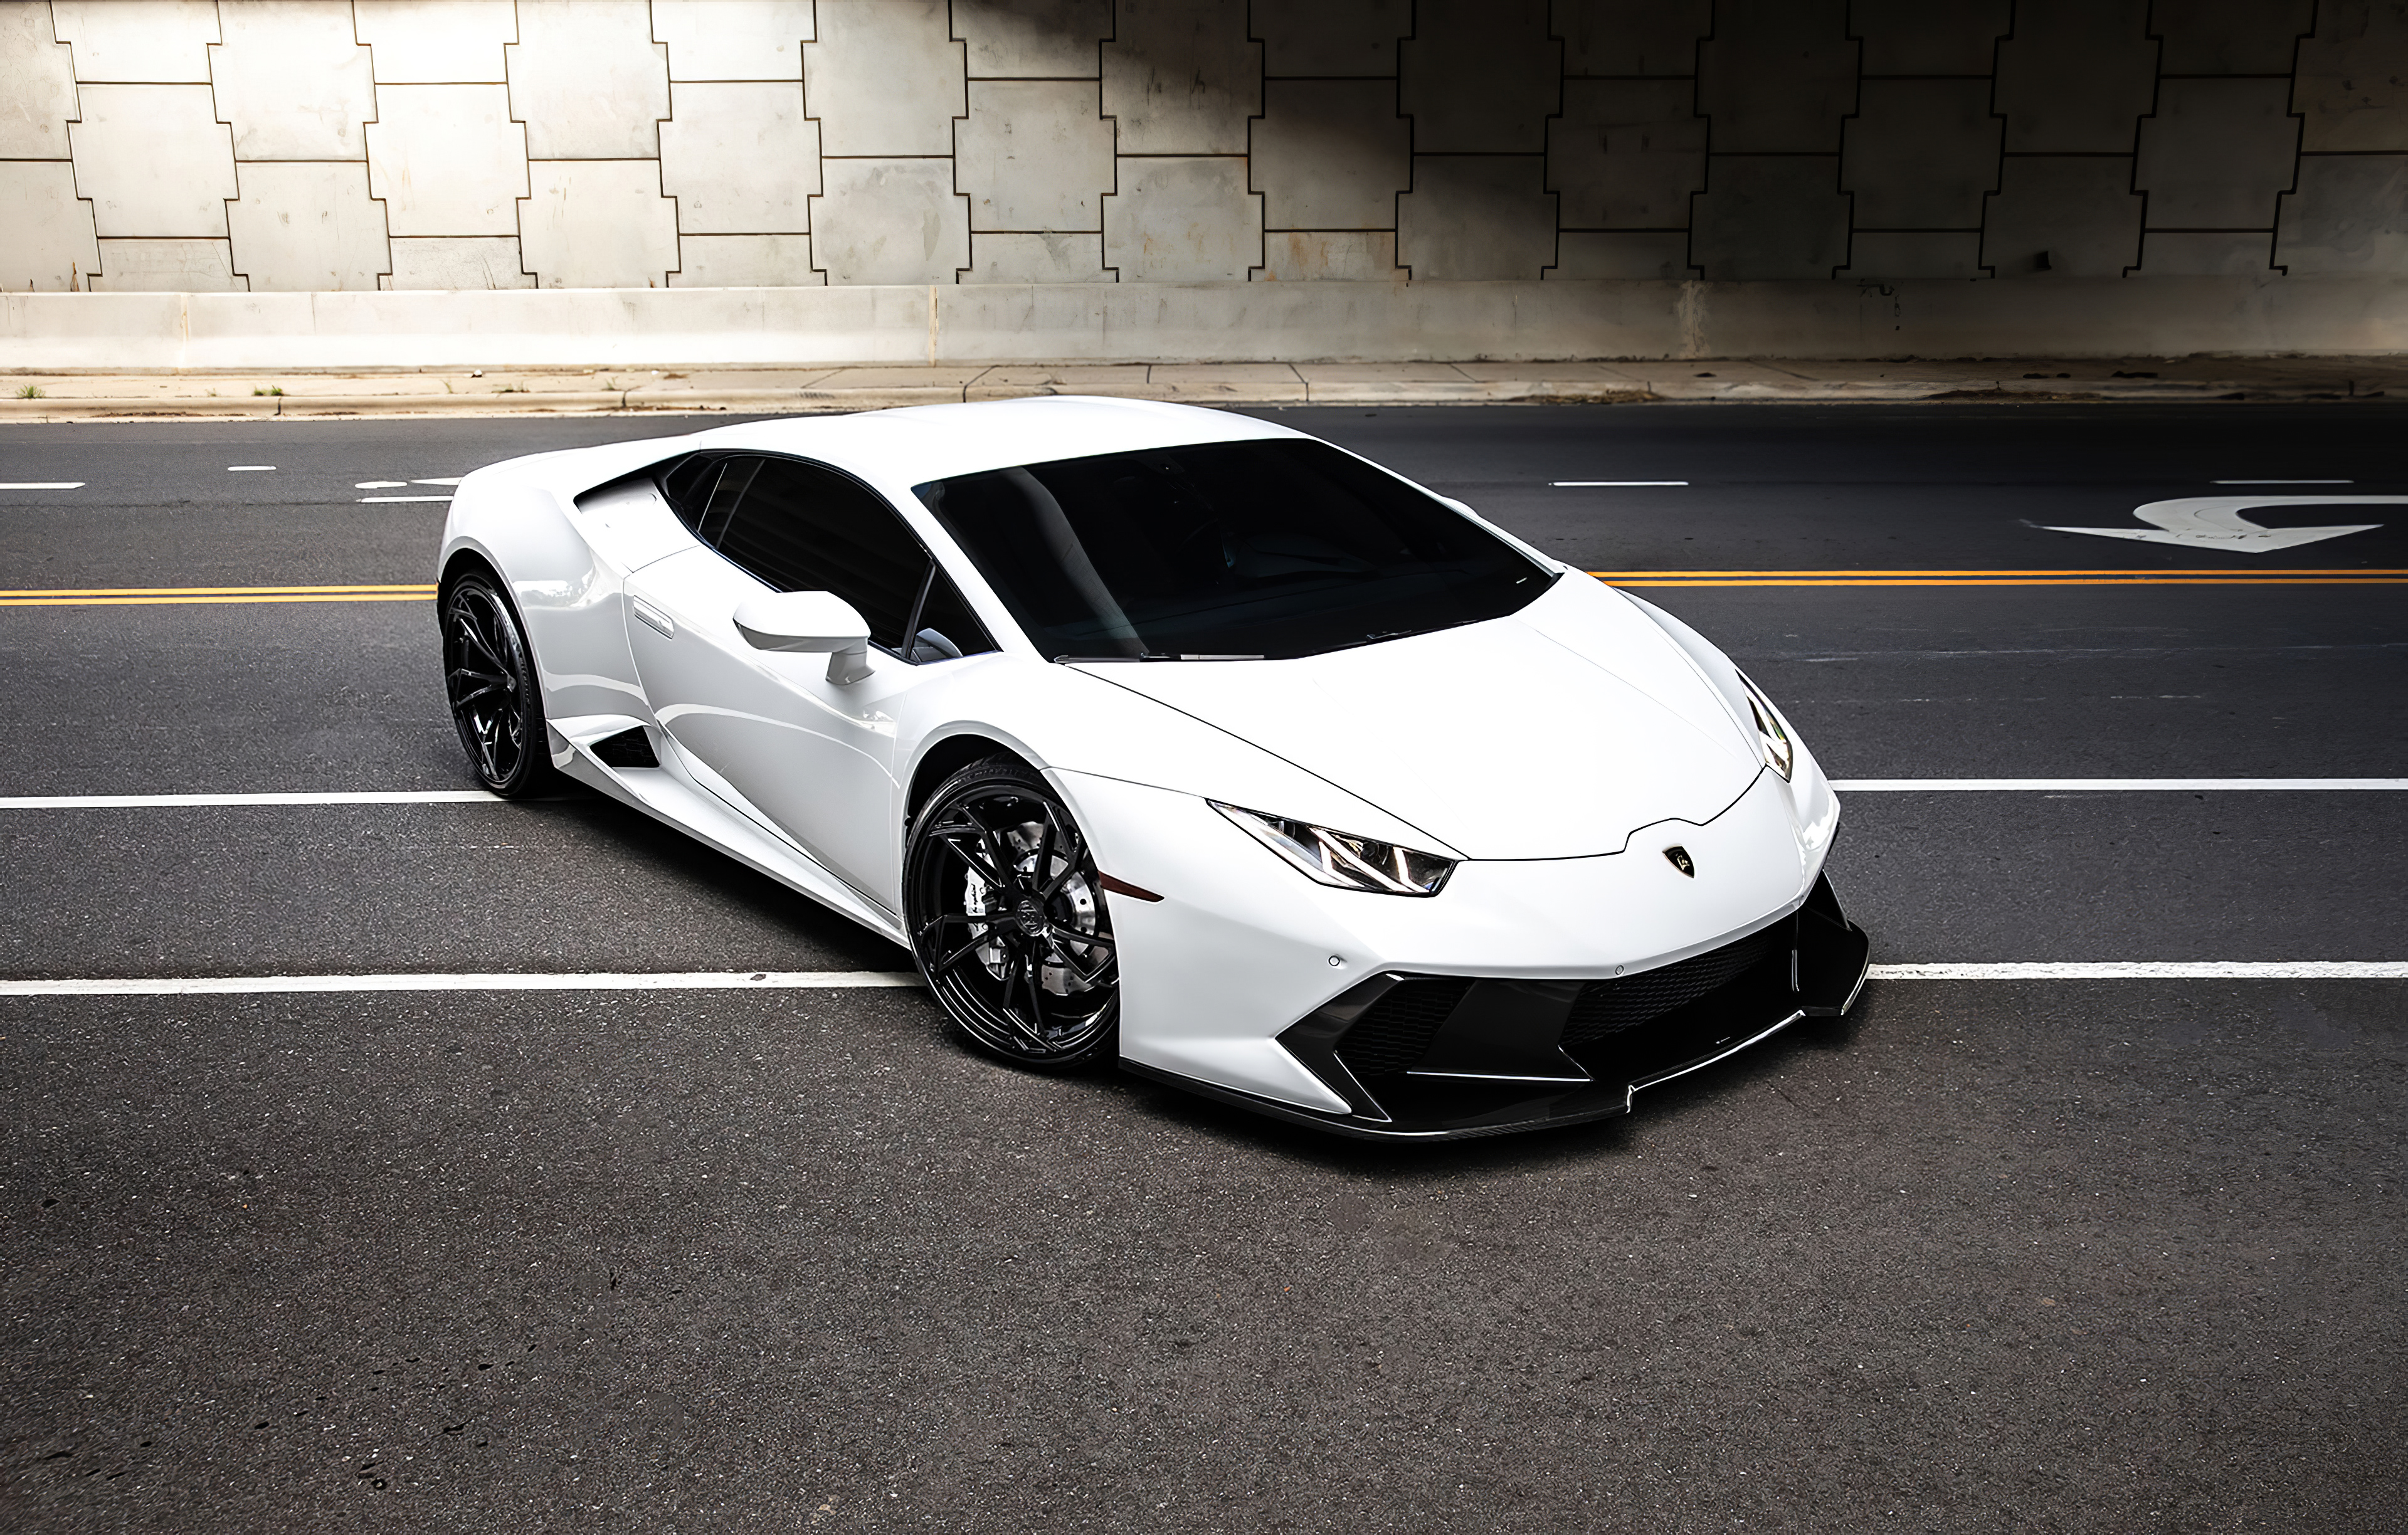 White Lamborghini Huracan 2020 4k Hd Cars 4k Wallpapers Images Backgrounds Photos And Pictures